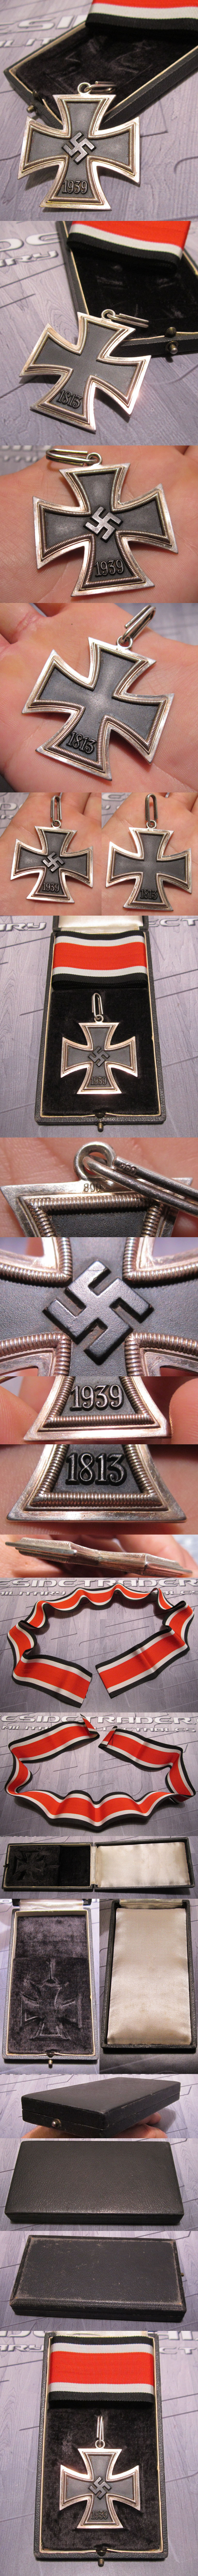 Cased Knights Cross by Steinhauer & Luck A type 800